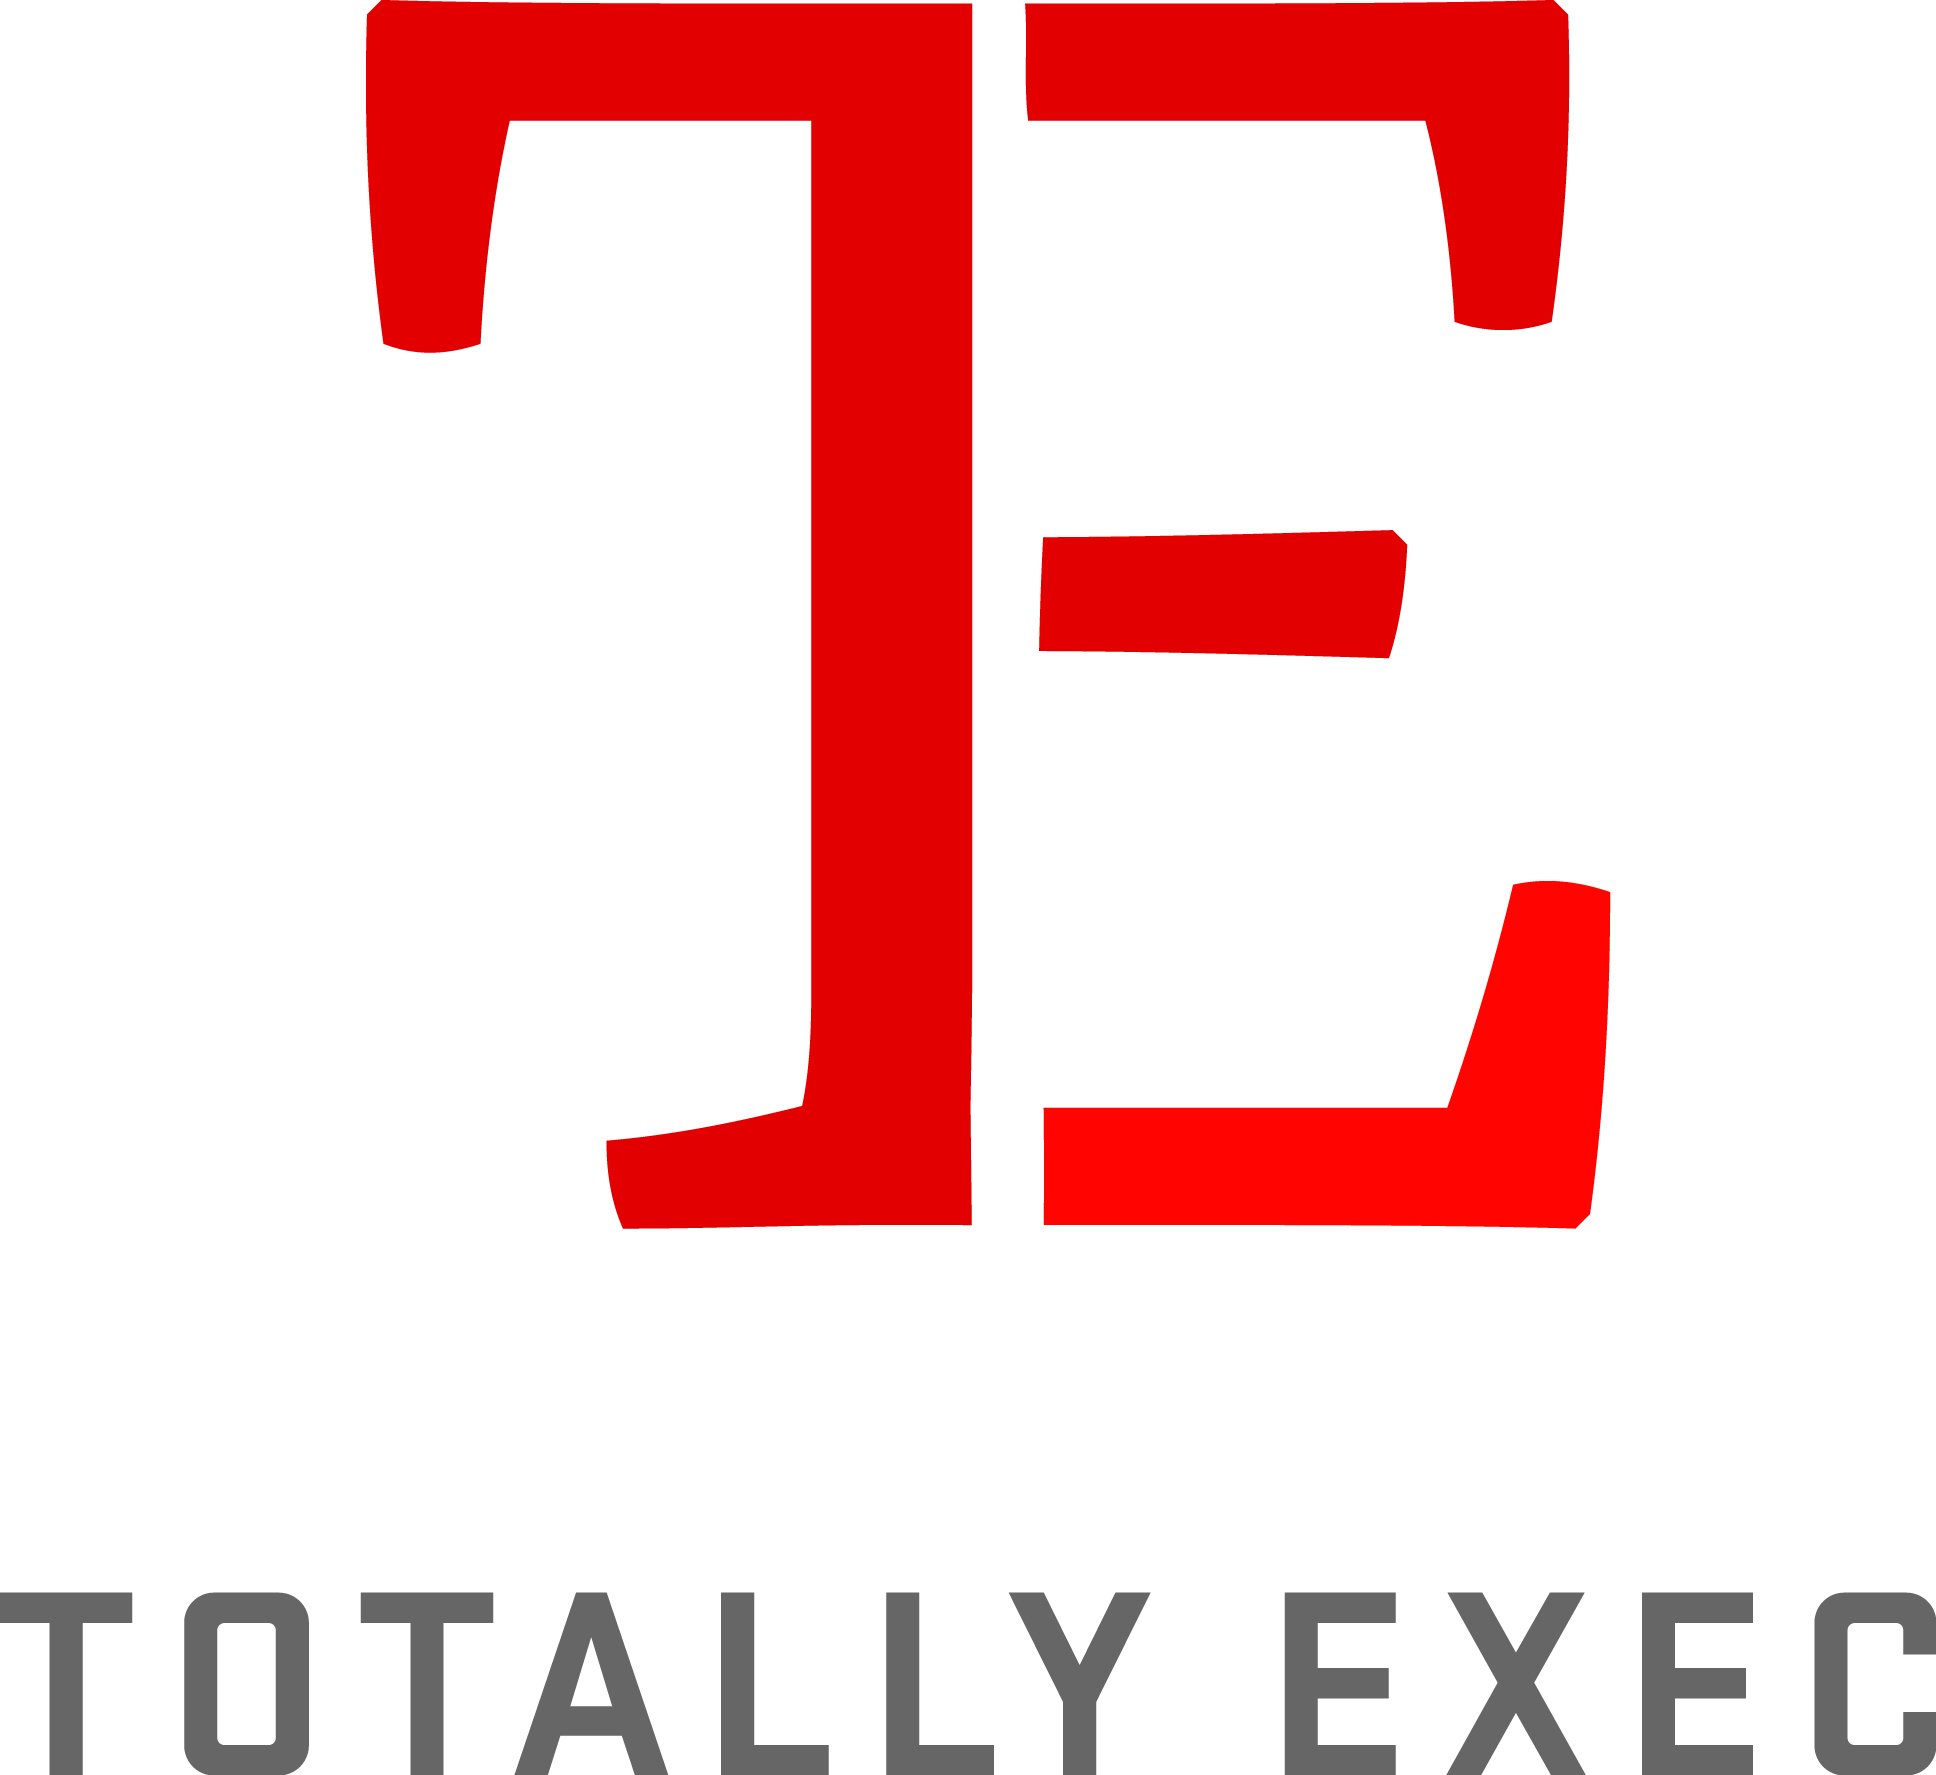 personal career management s career coaching partners totallyexec advertises more senior level roles than any other uk executive job site